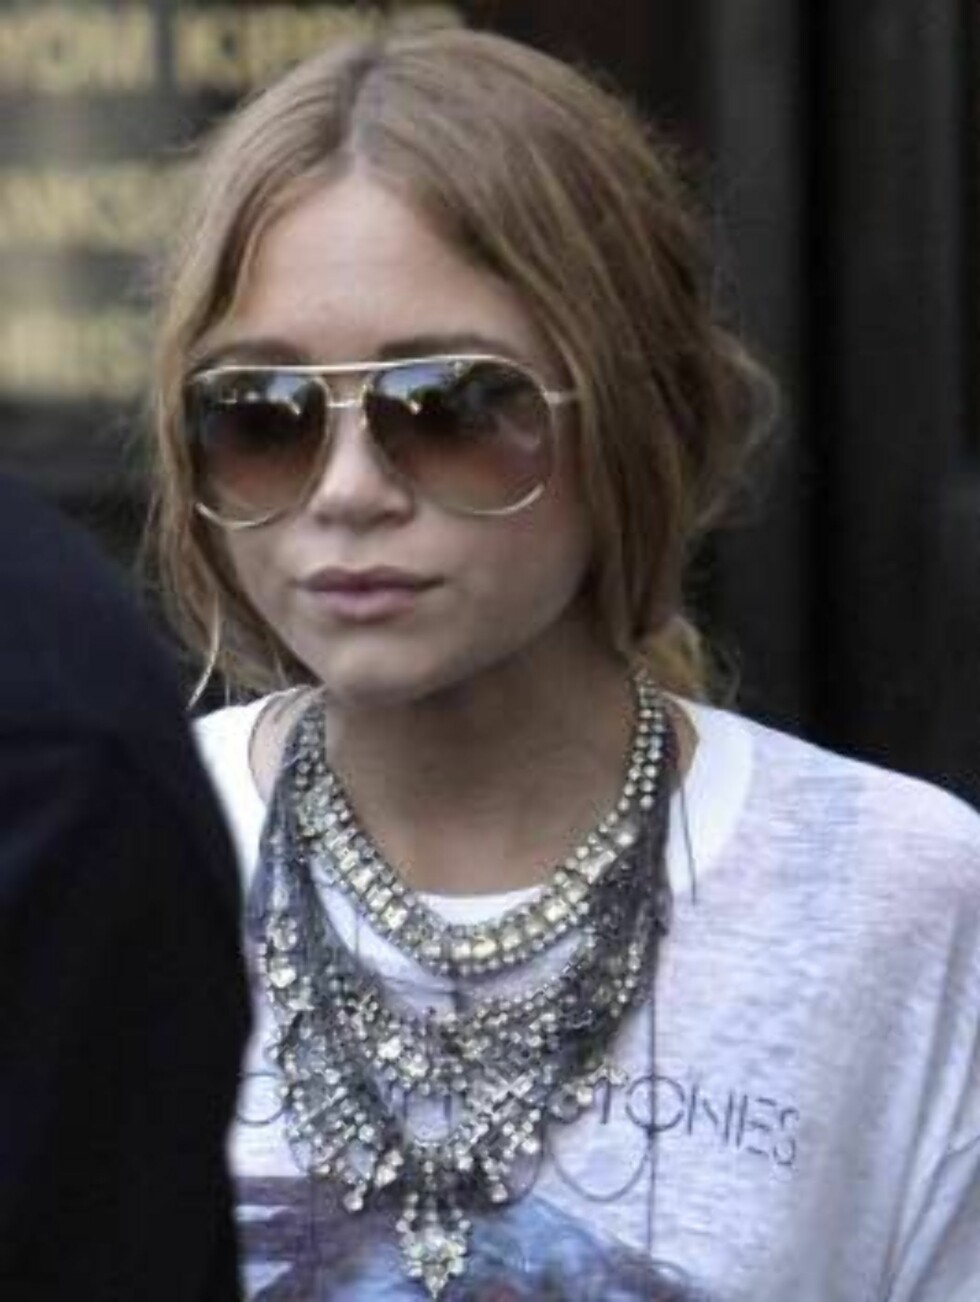 Mary-Kate Olsen covered with jewelry as she leaves antique jewelry store in Beverly Hills August 22, 2006 X17agency EXCLUSIVE Foto: All Over Press